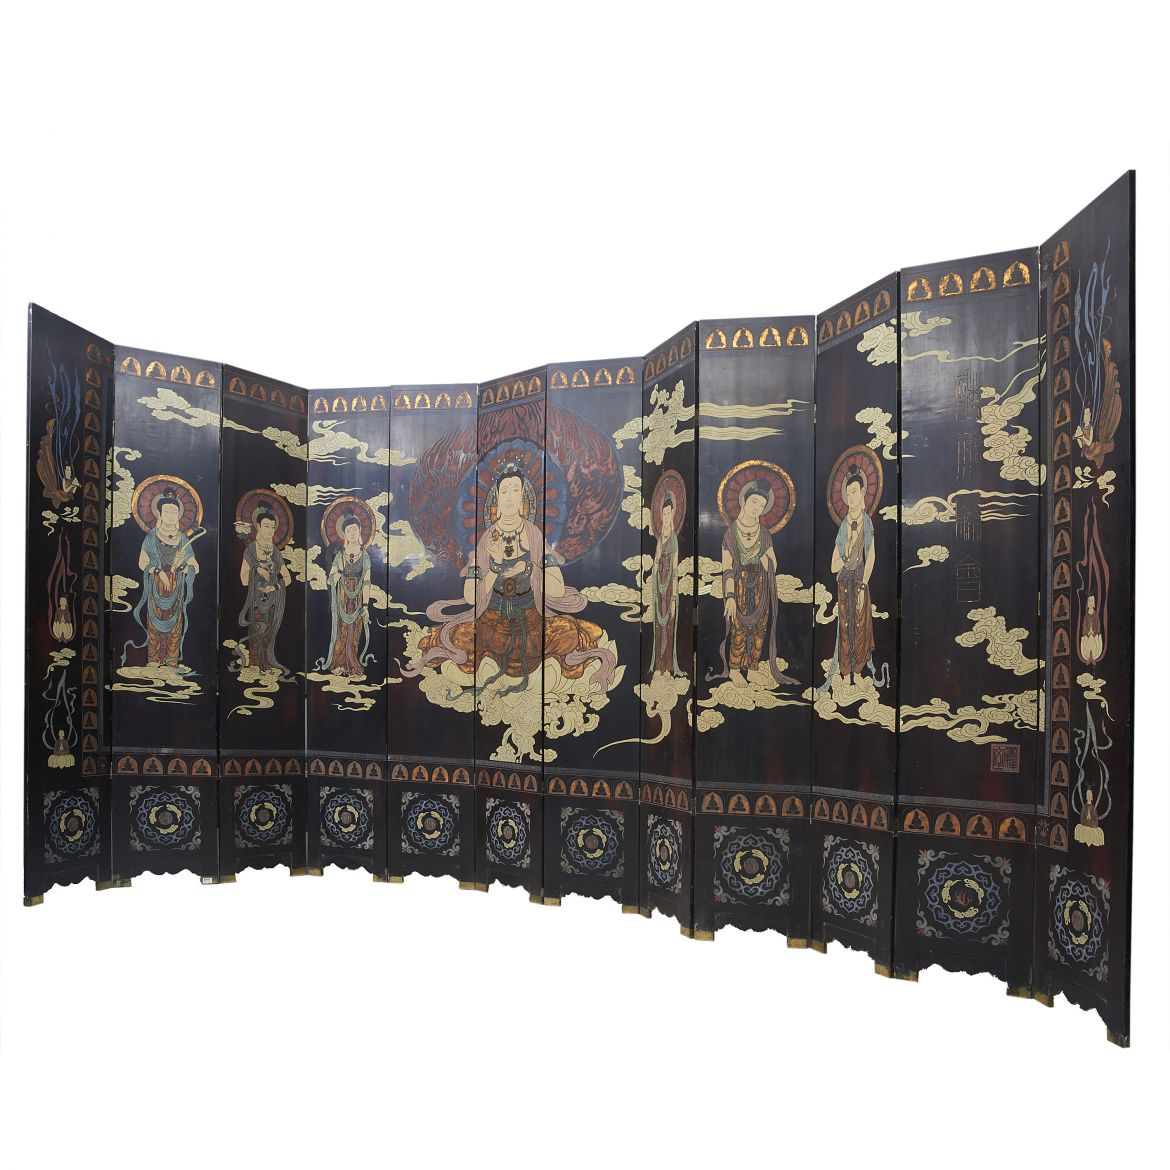 Chinese Coromandel Lacquer Screen